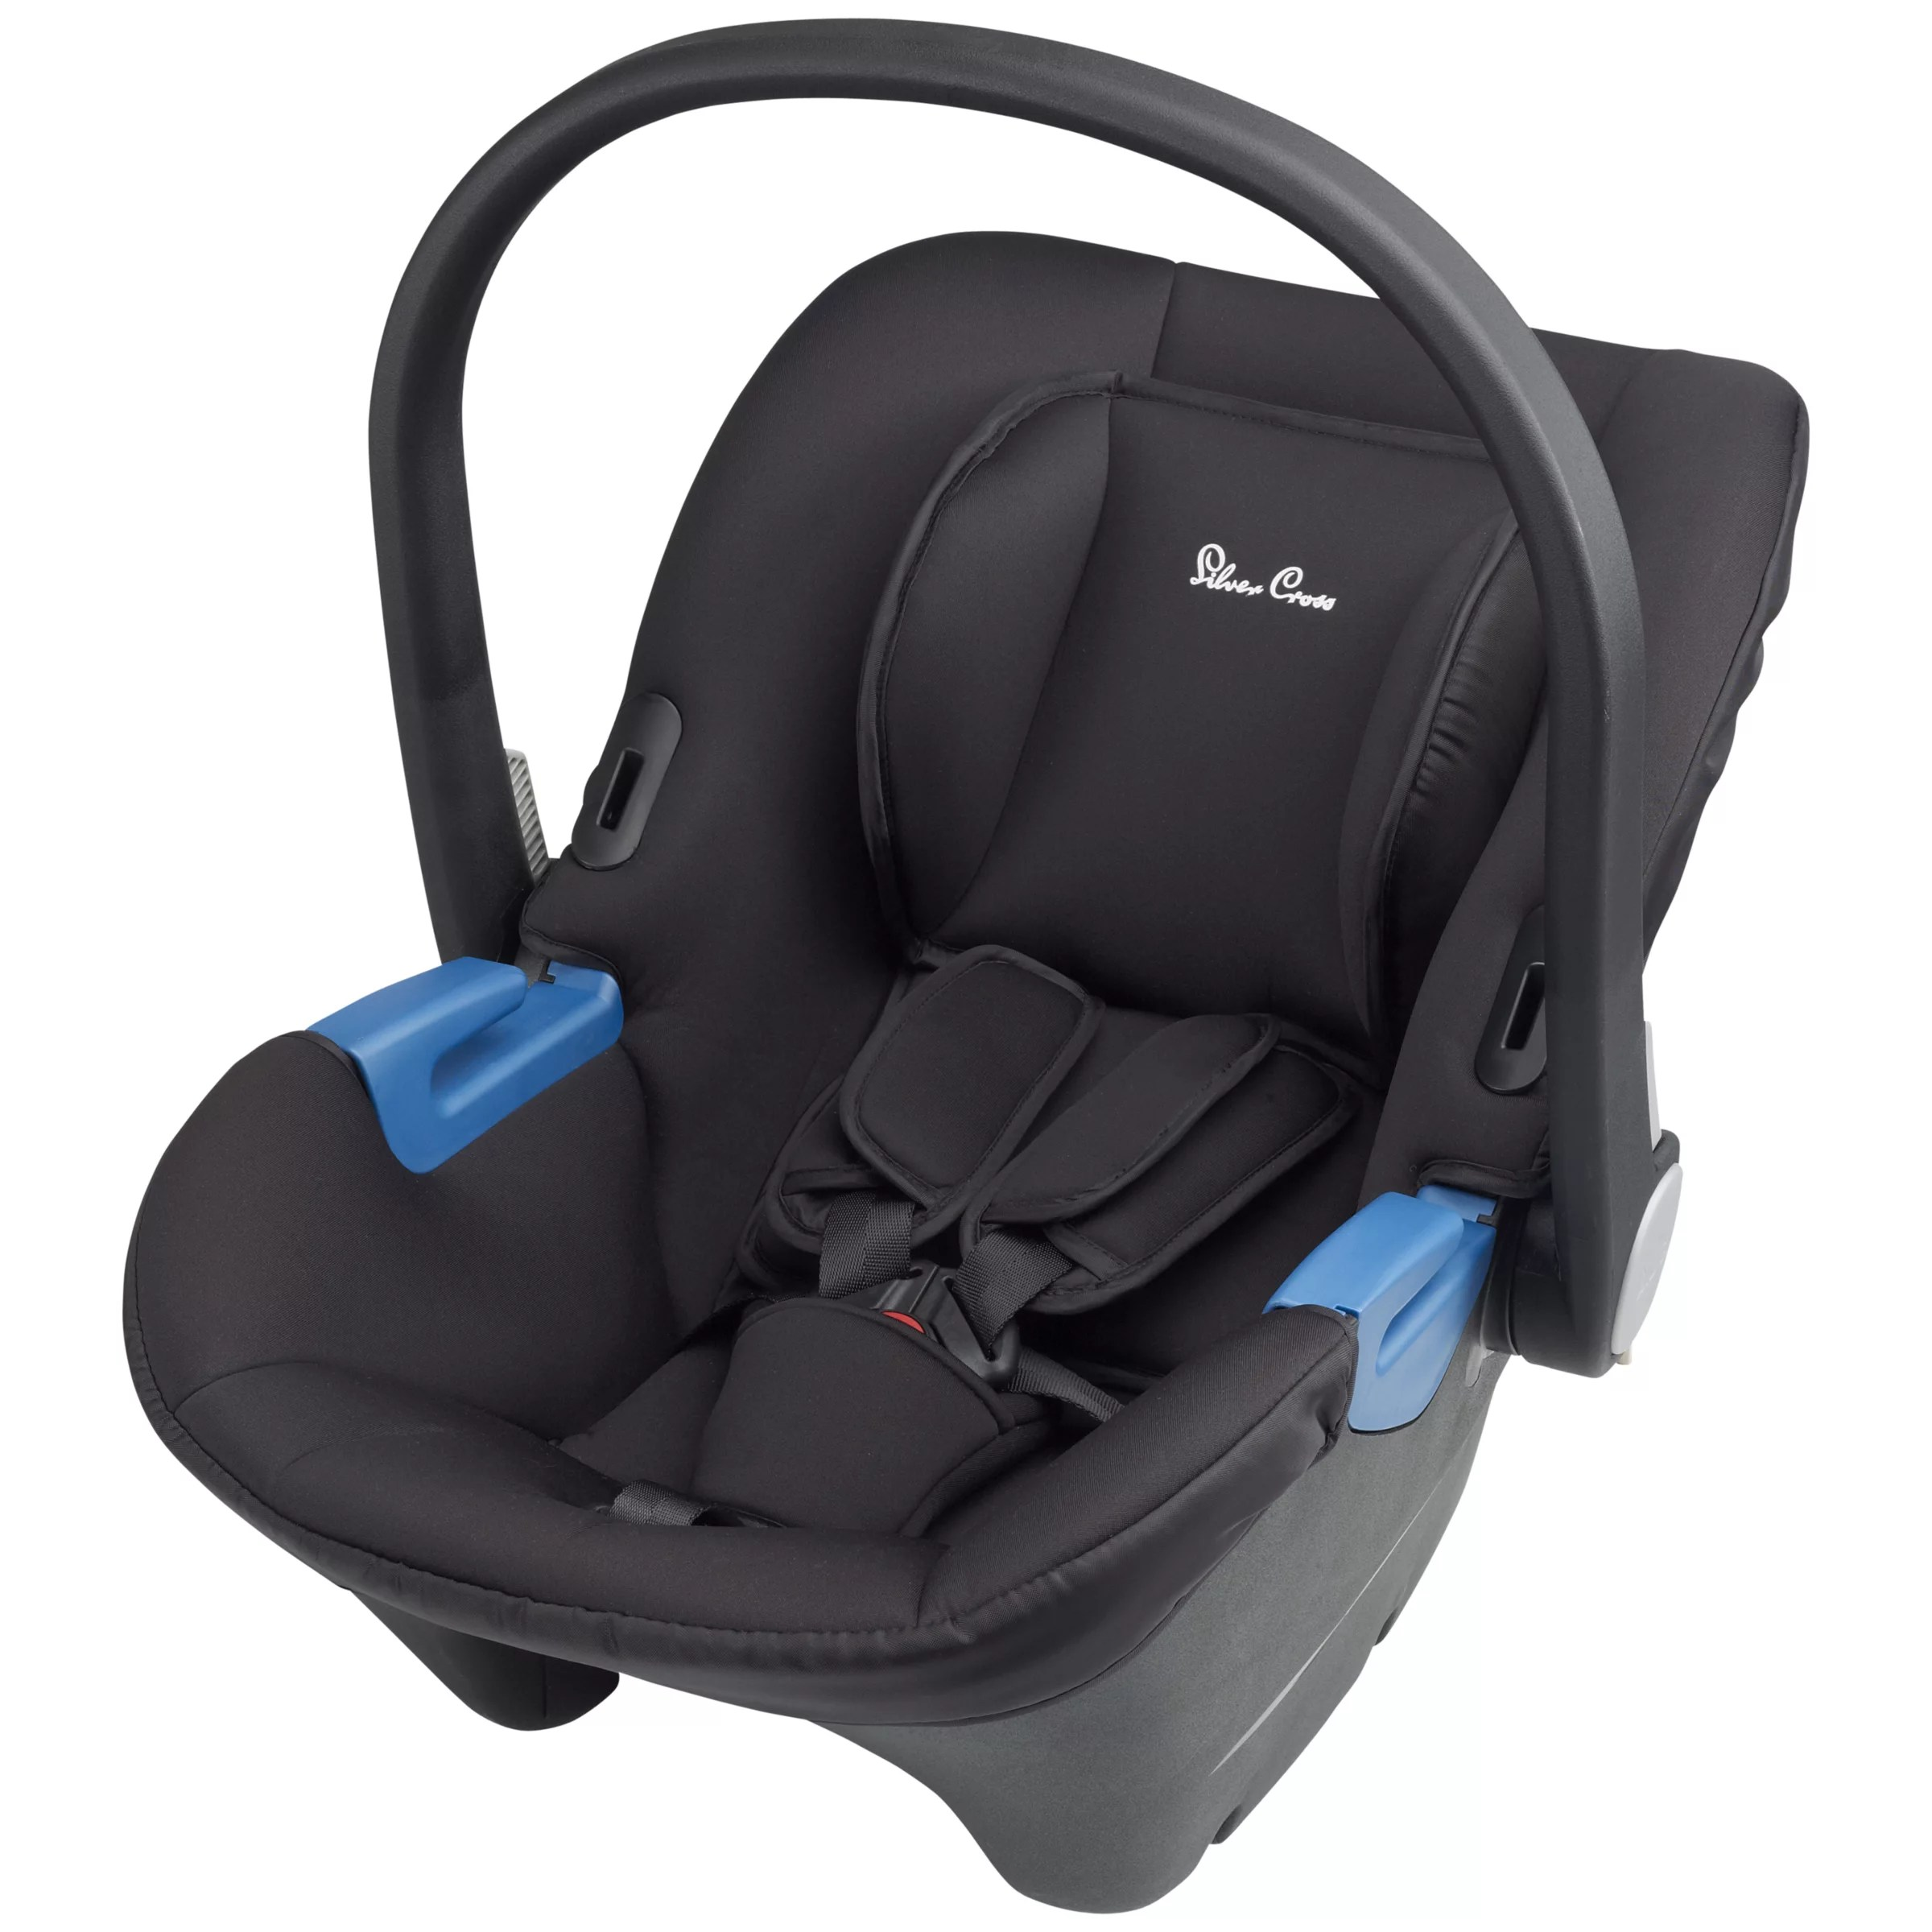 Infant Carrier Car Seat Guide Silver Cross Simplicity Group Baby Car Seat Black